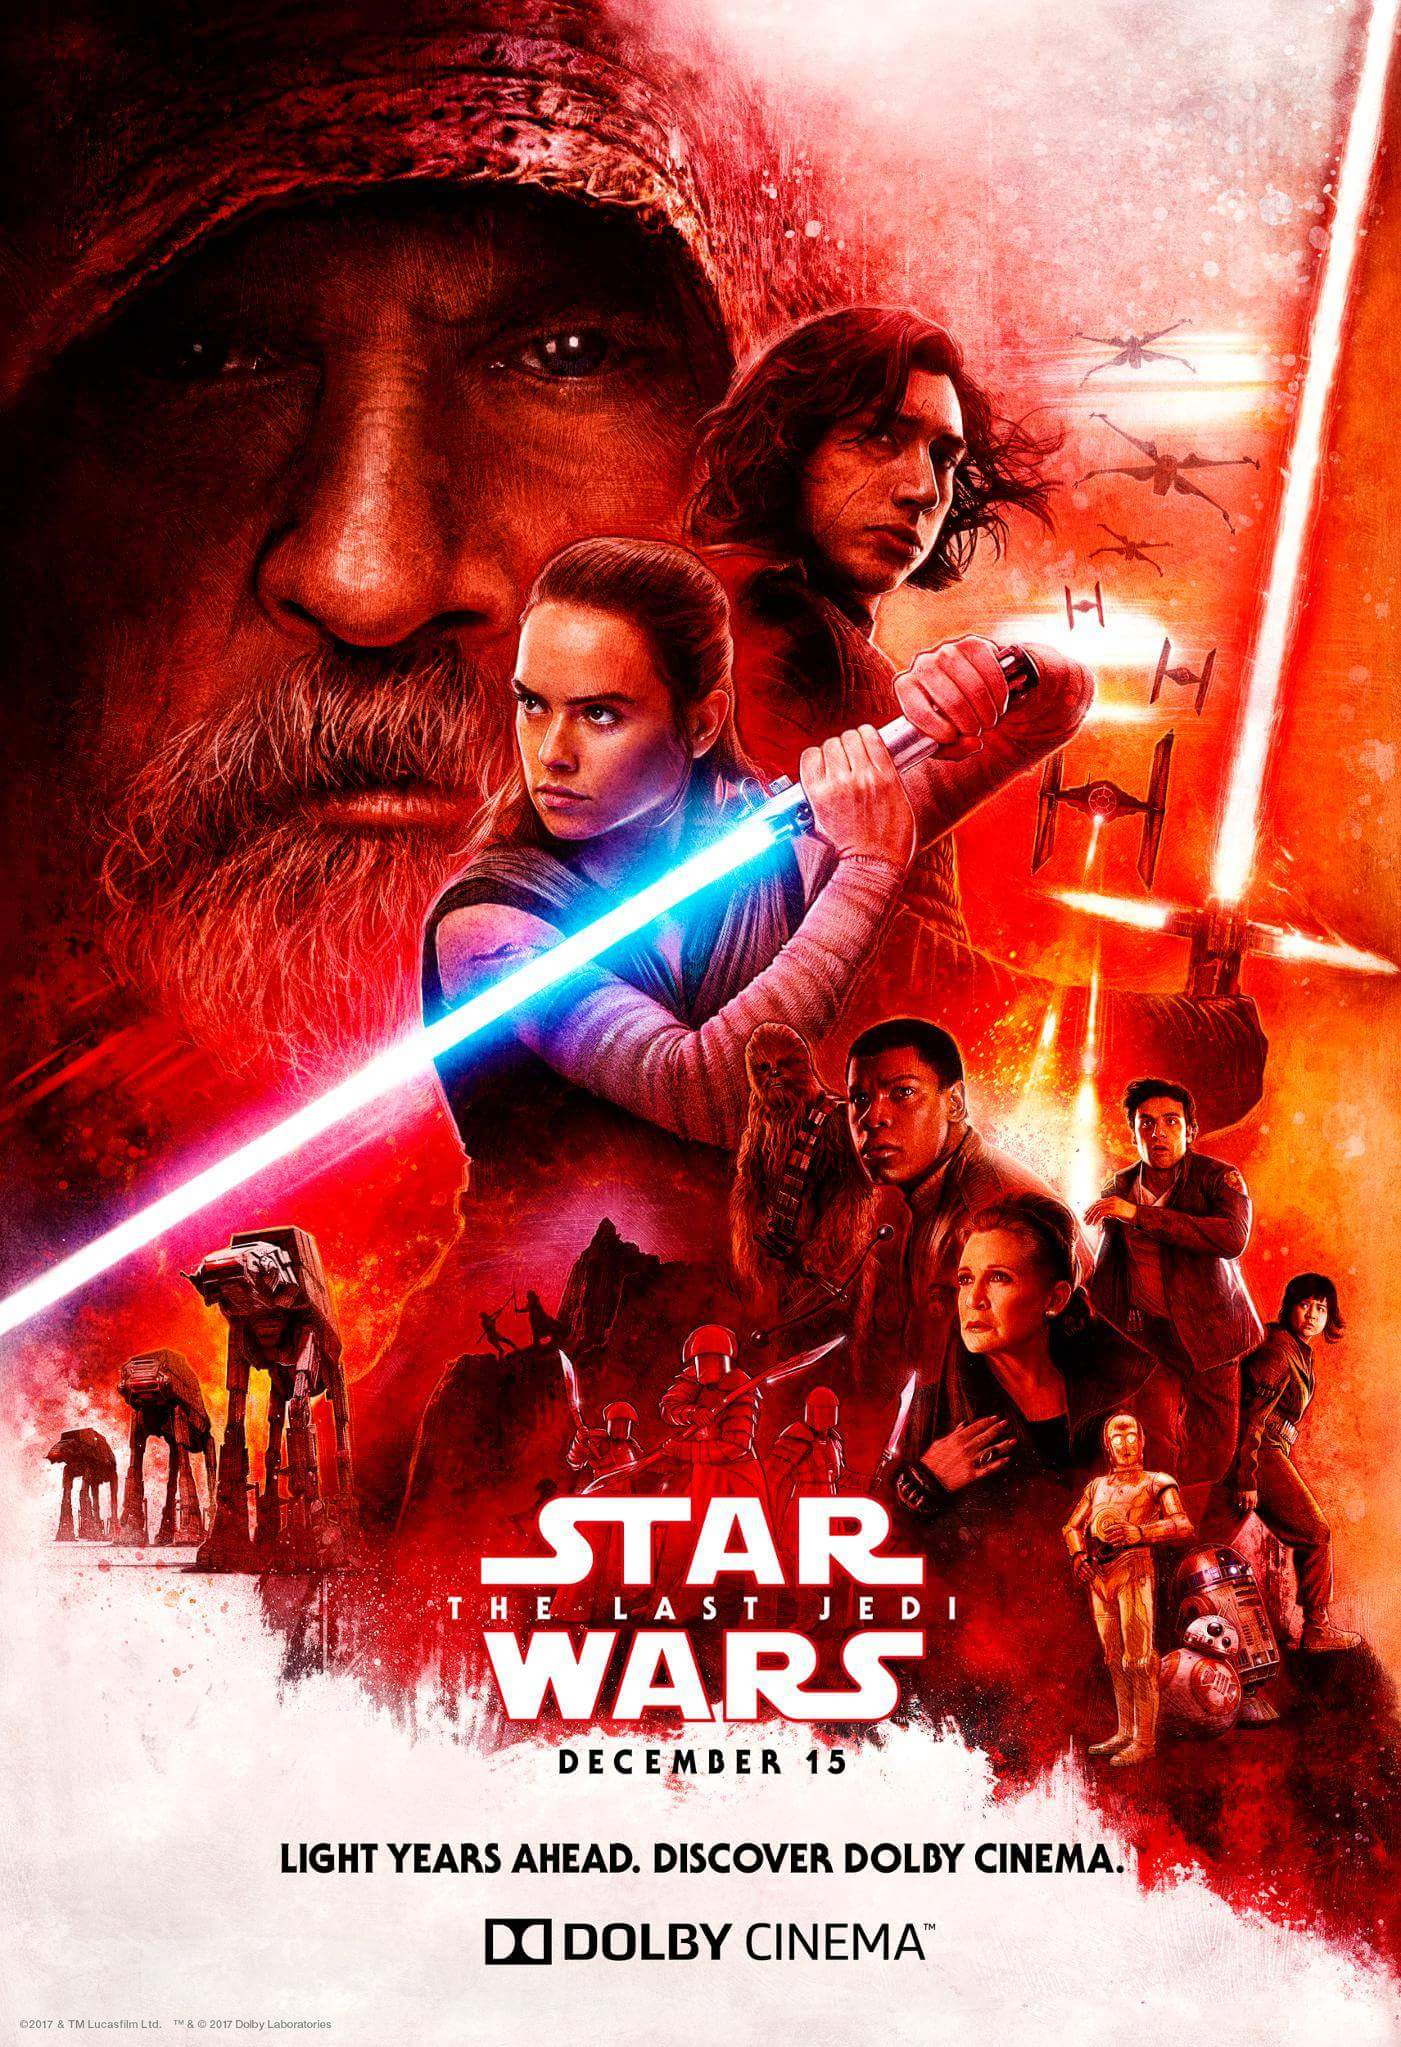 Dolby Cinema Release Their Own Star Wars The Last Jedi Poster Star Wars The Rise Of Skywalker Movie News